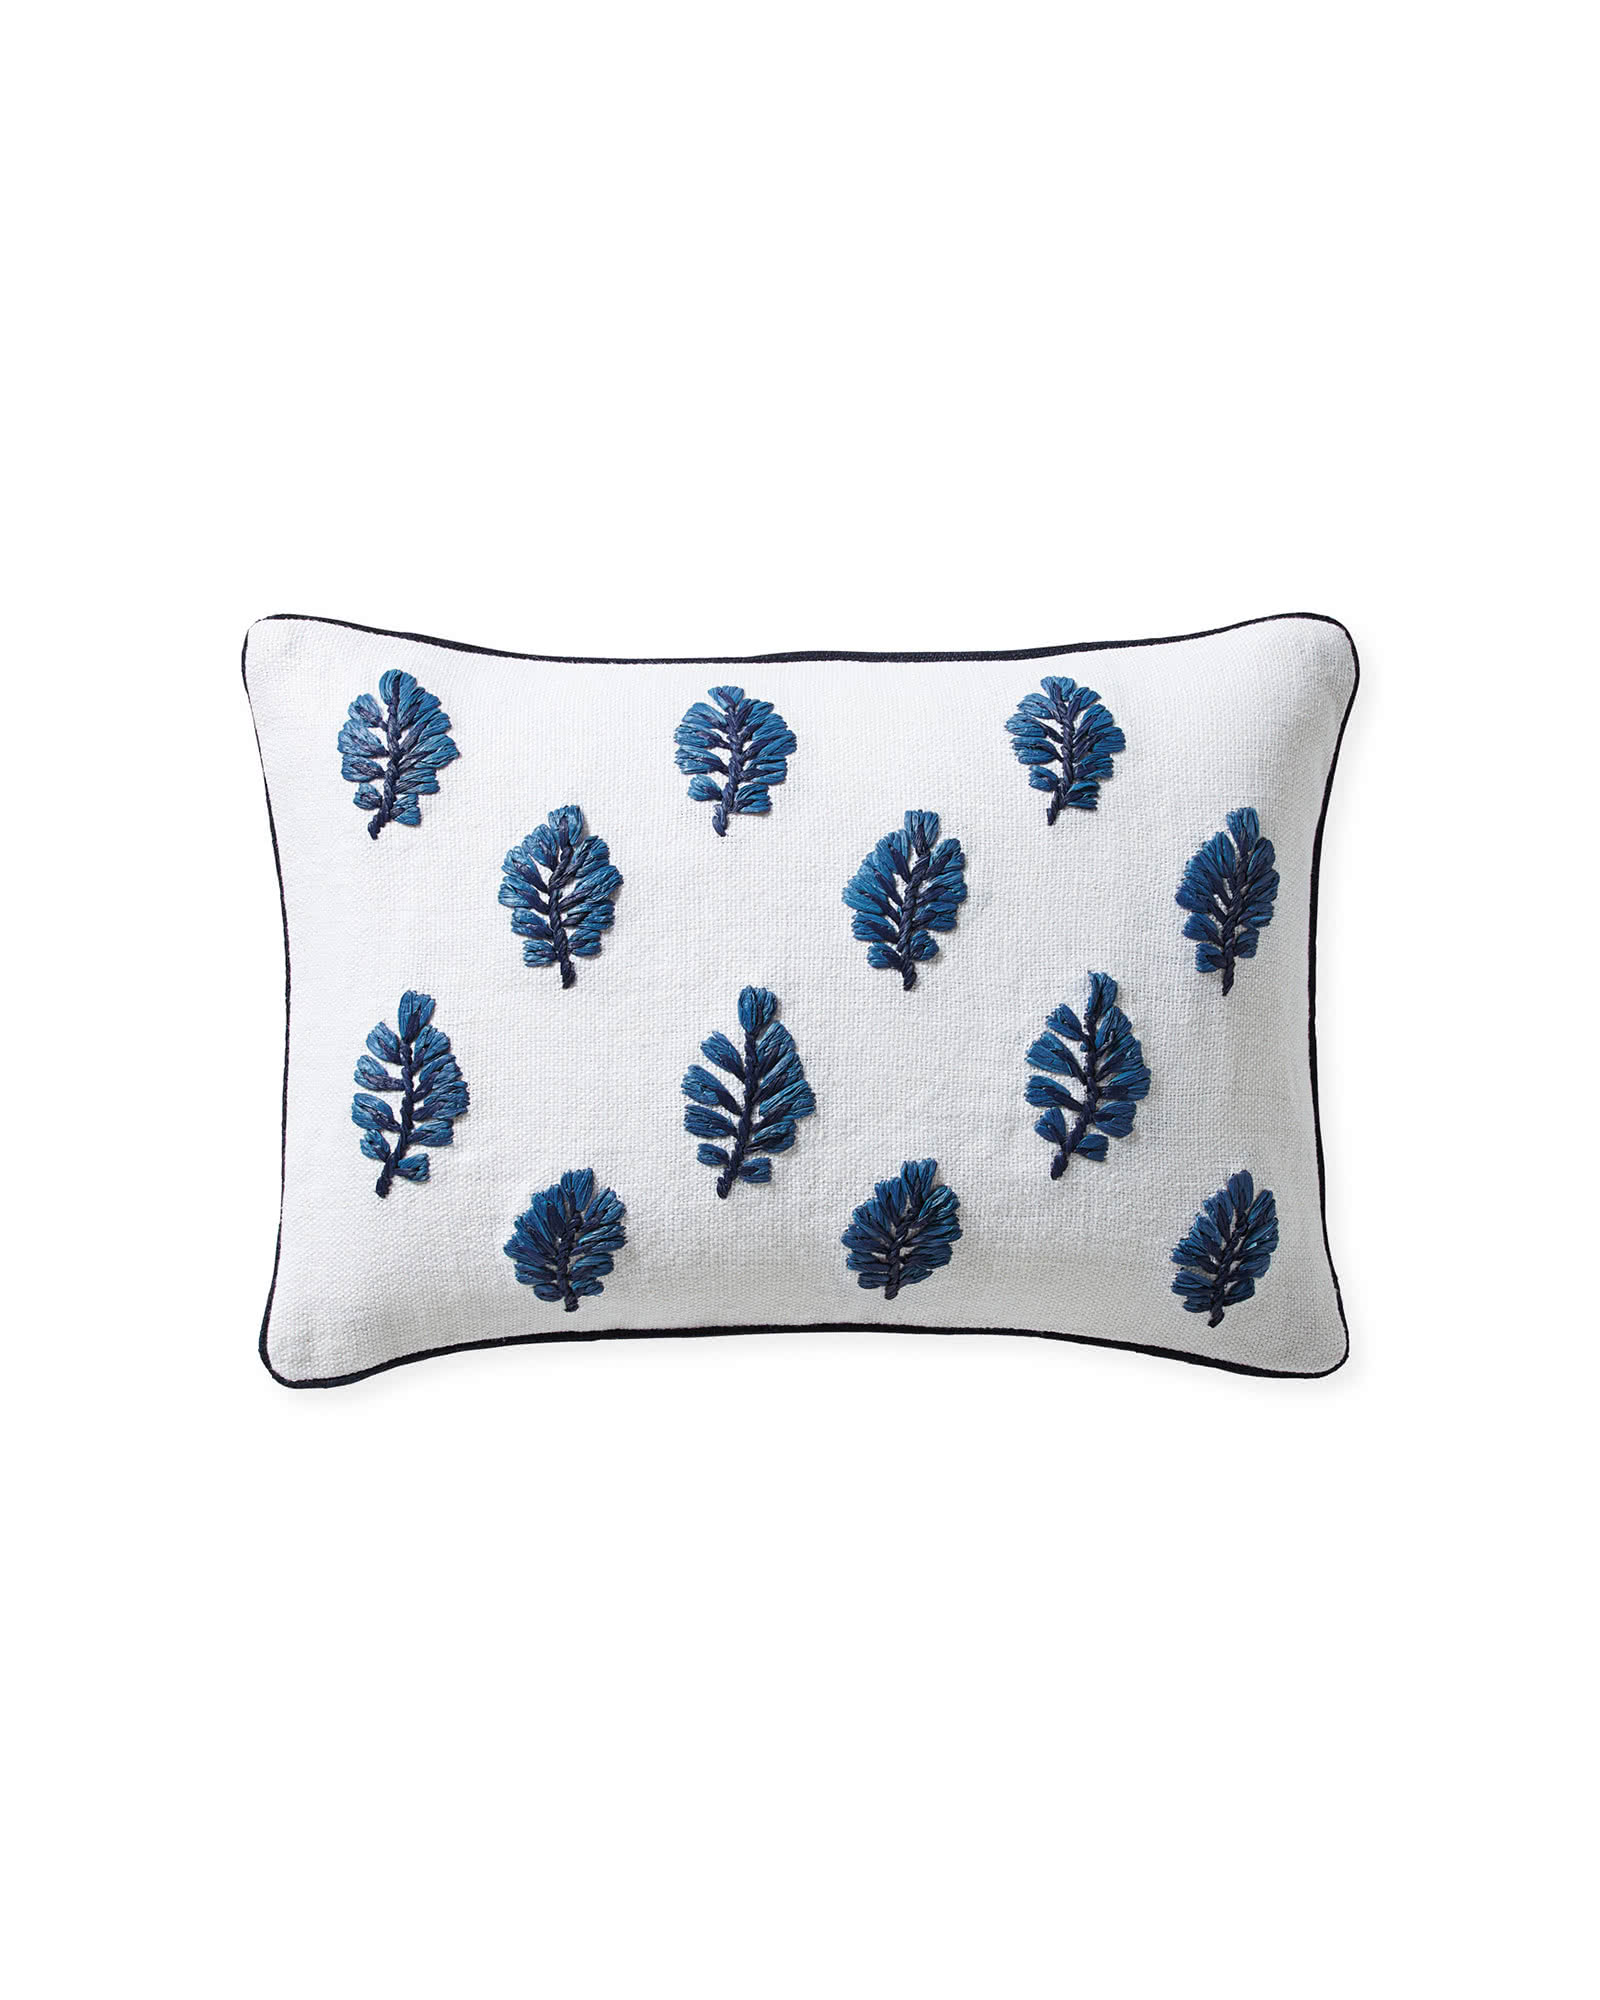 Blossom Pillow Cover - blue and white coastal decor